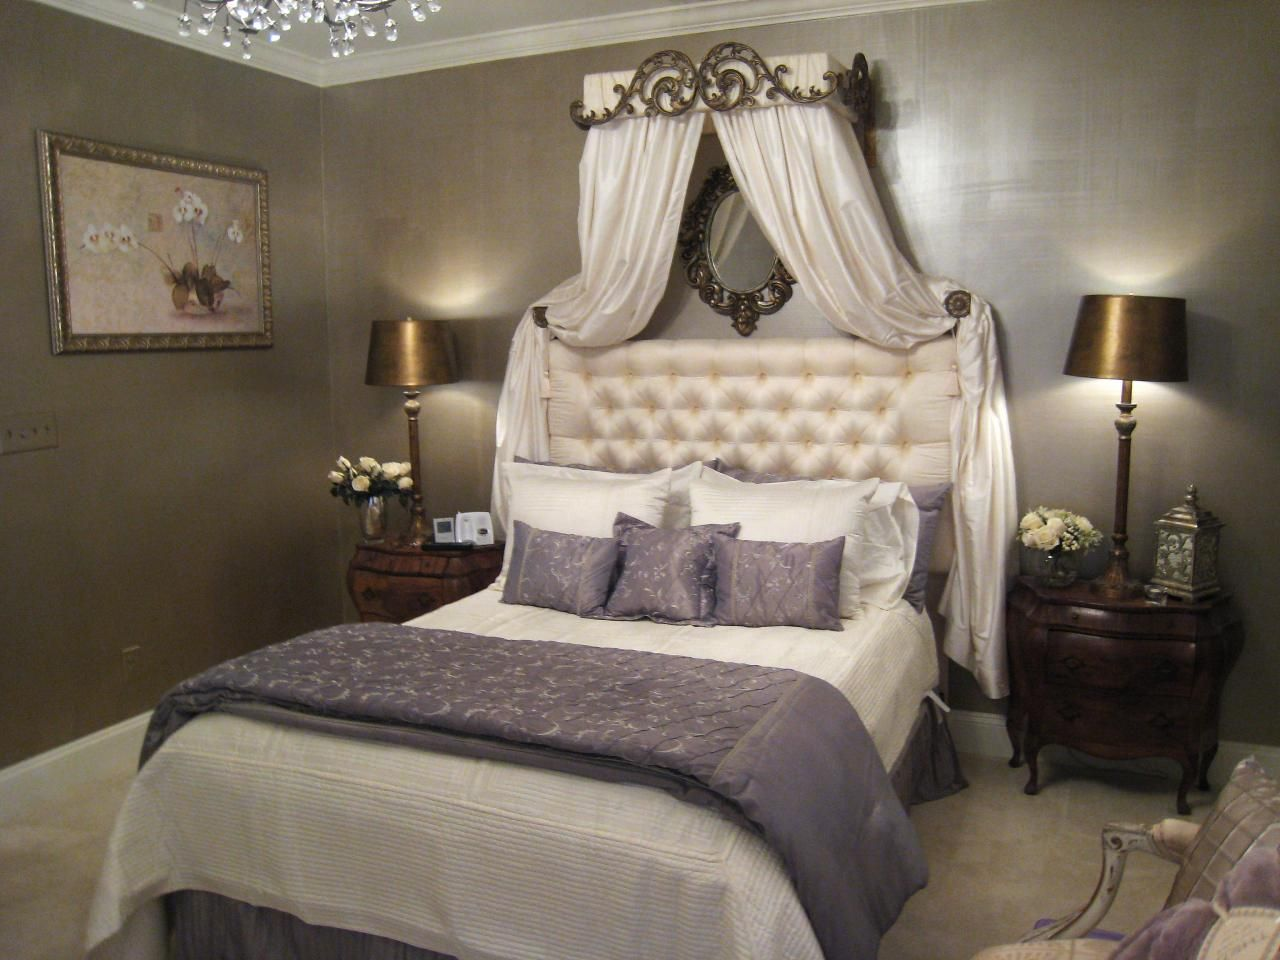 bed crown design ideas bed crown hgtv and wall waterfall bed crown design ideas